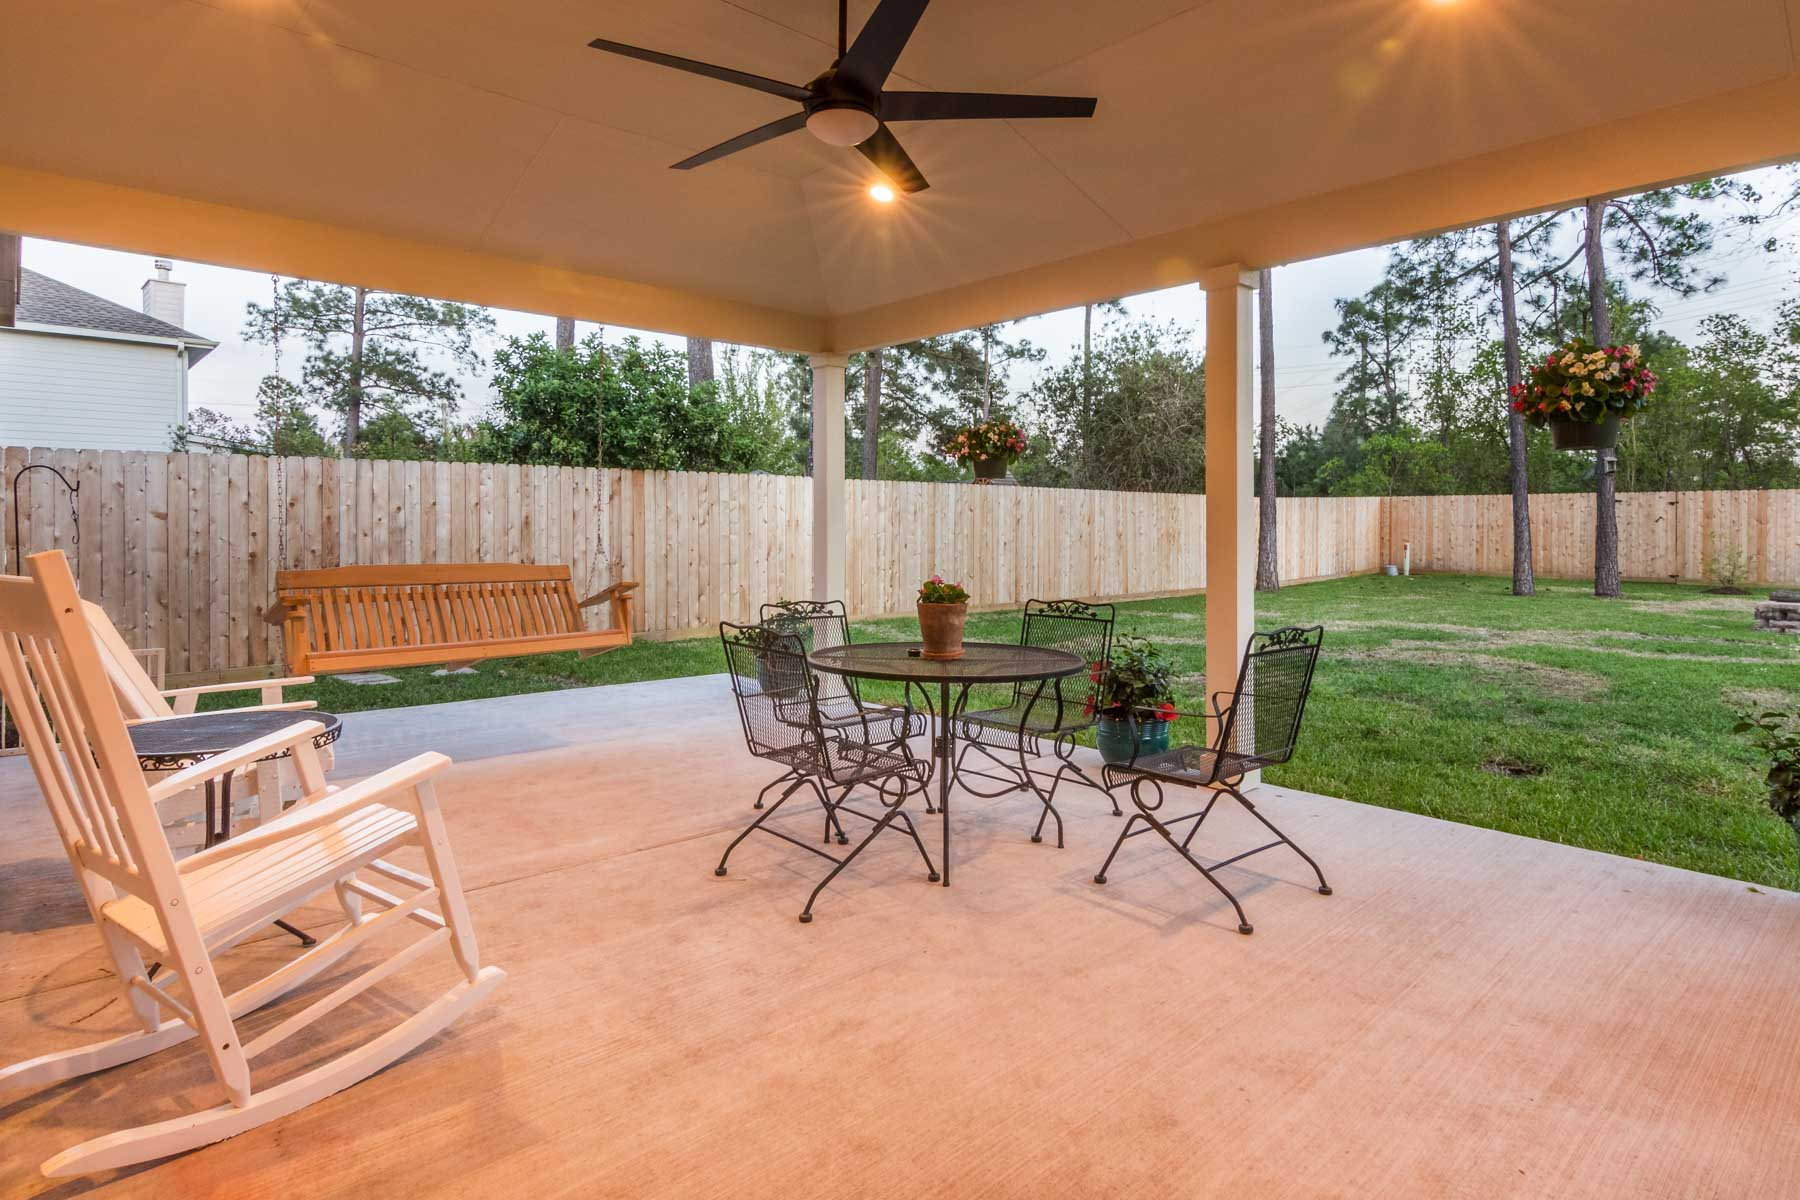 Hip roof Patio Cover - HHI Patio Covers on Backyard Patio Covers  id=61579